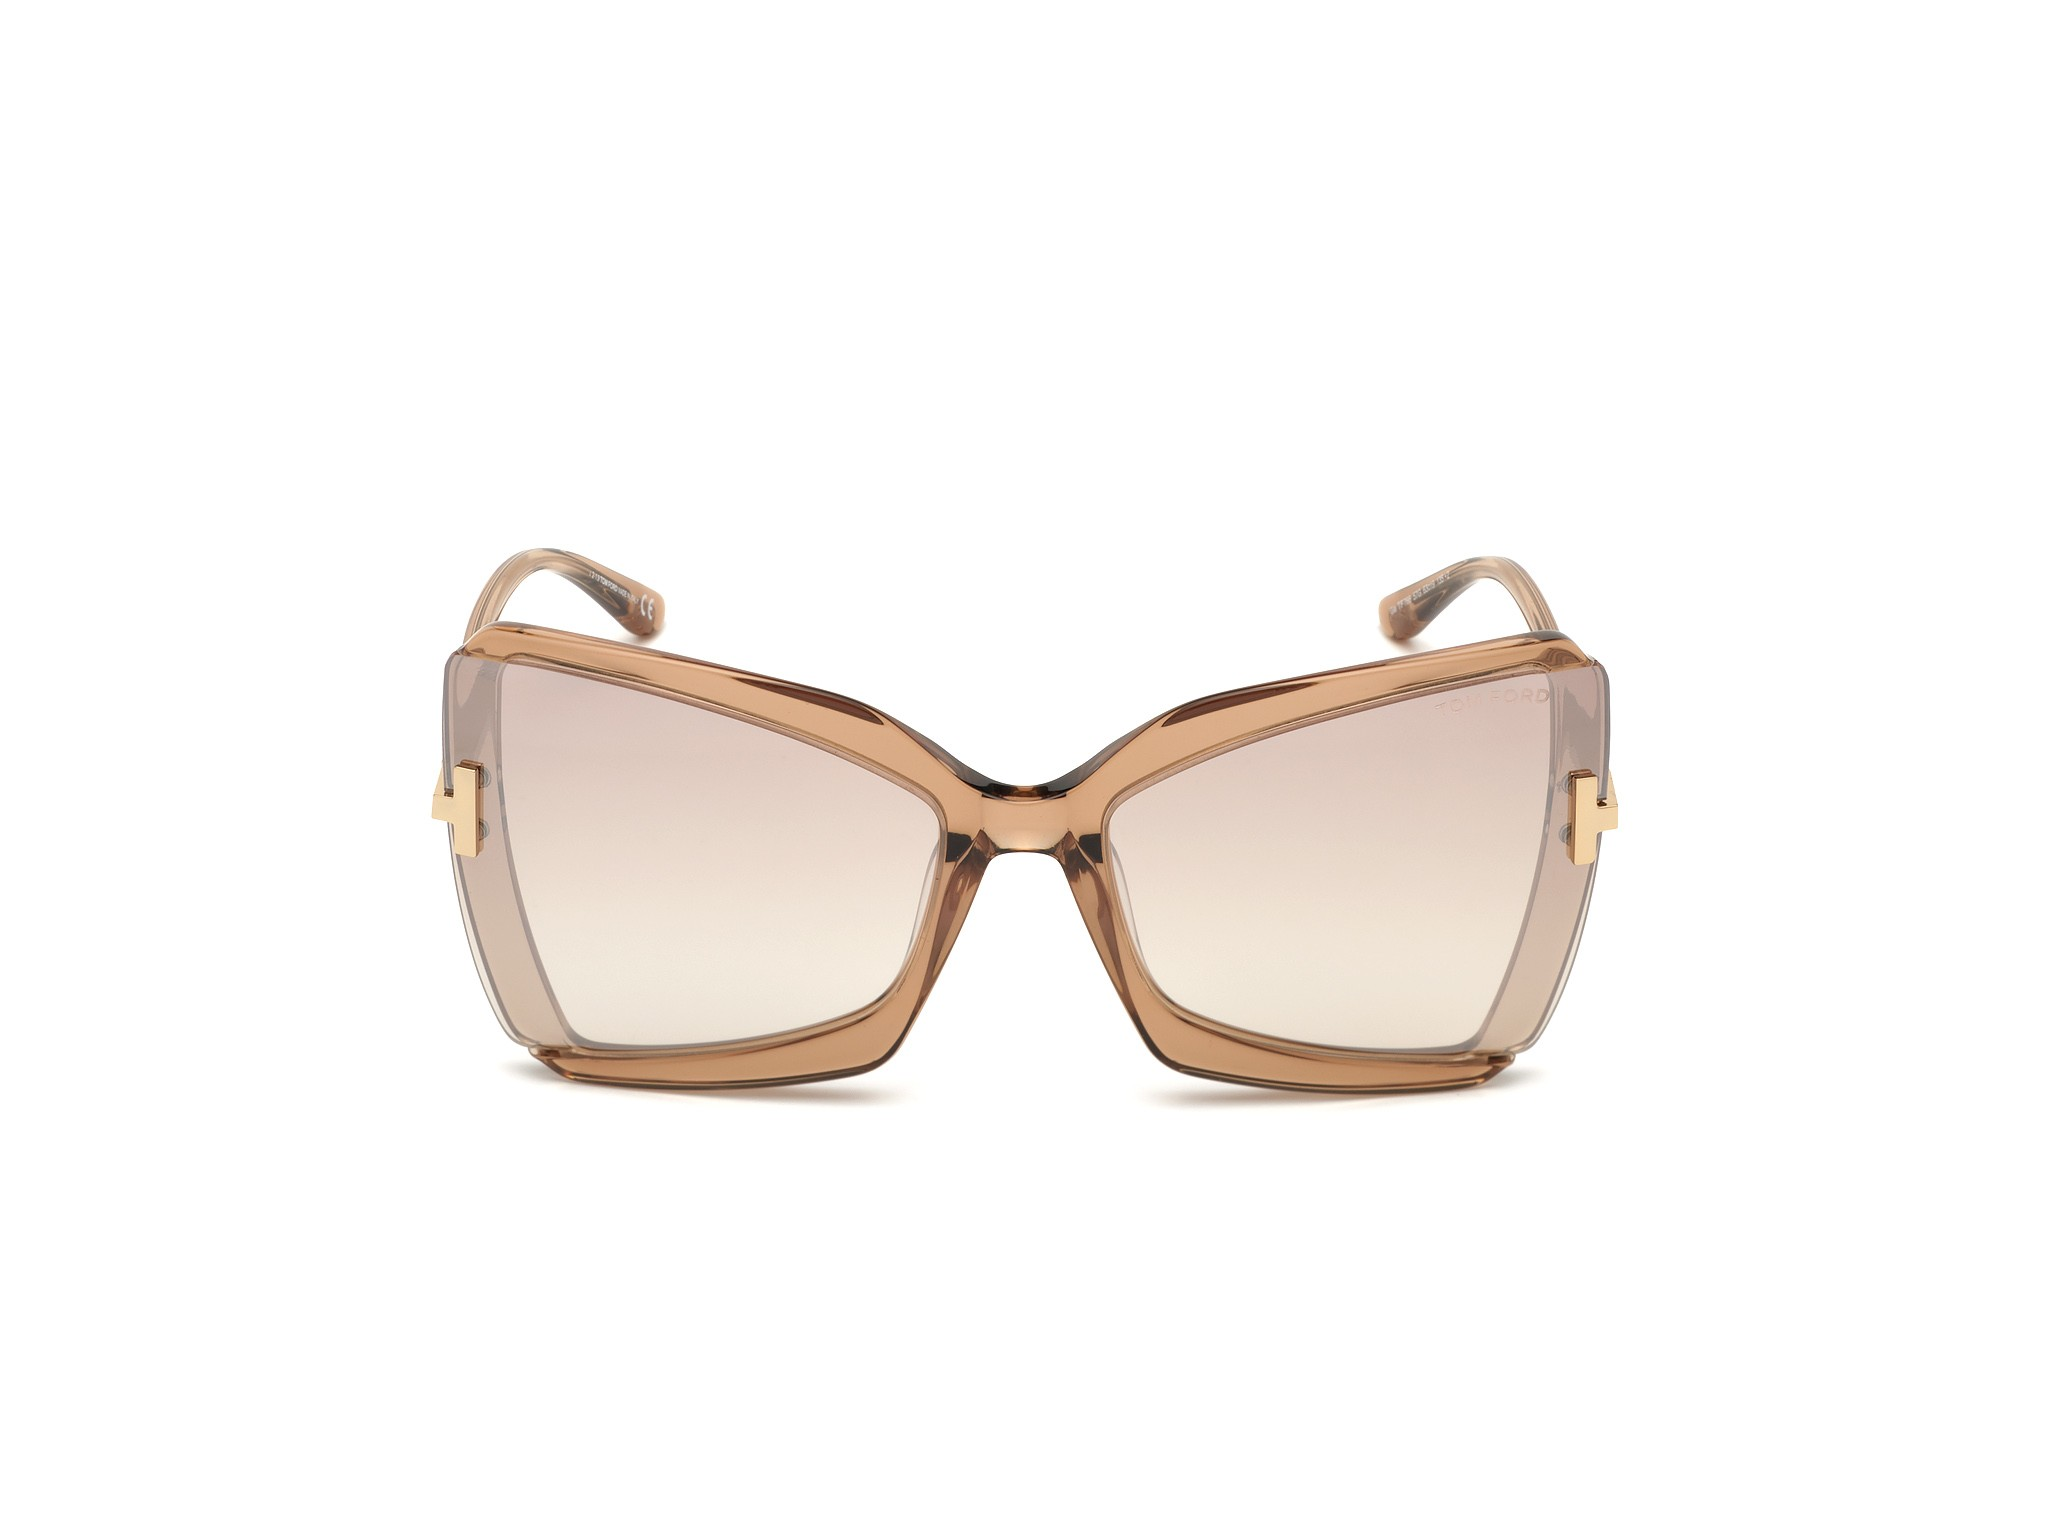 TOM FORD 0766 57G 63 SIZE